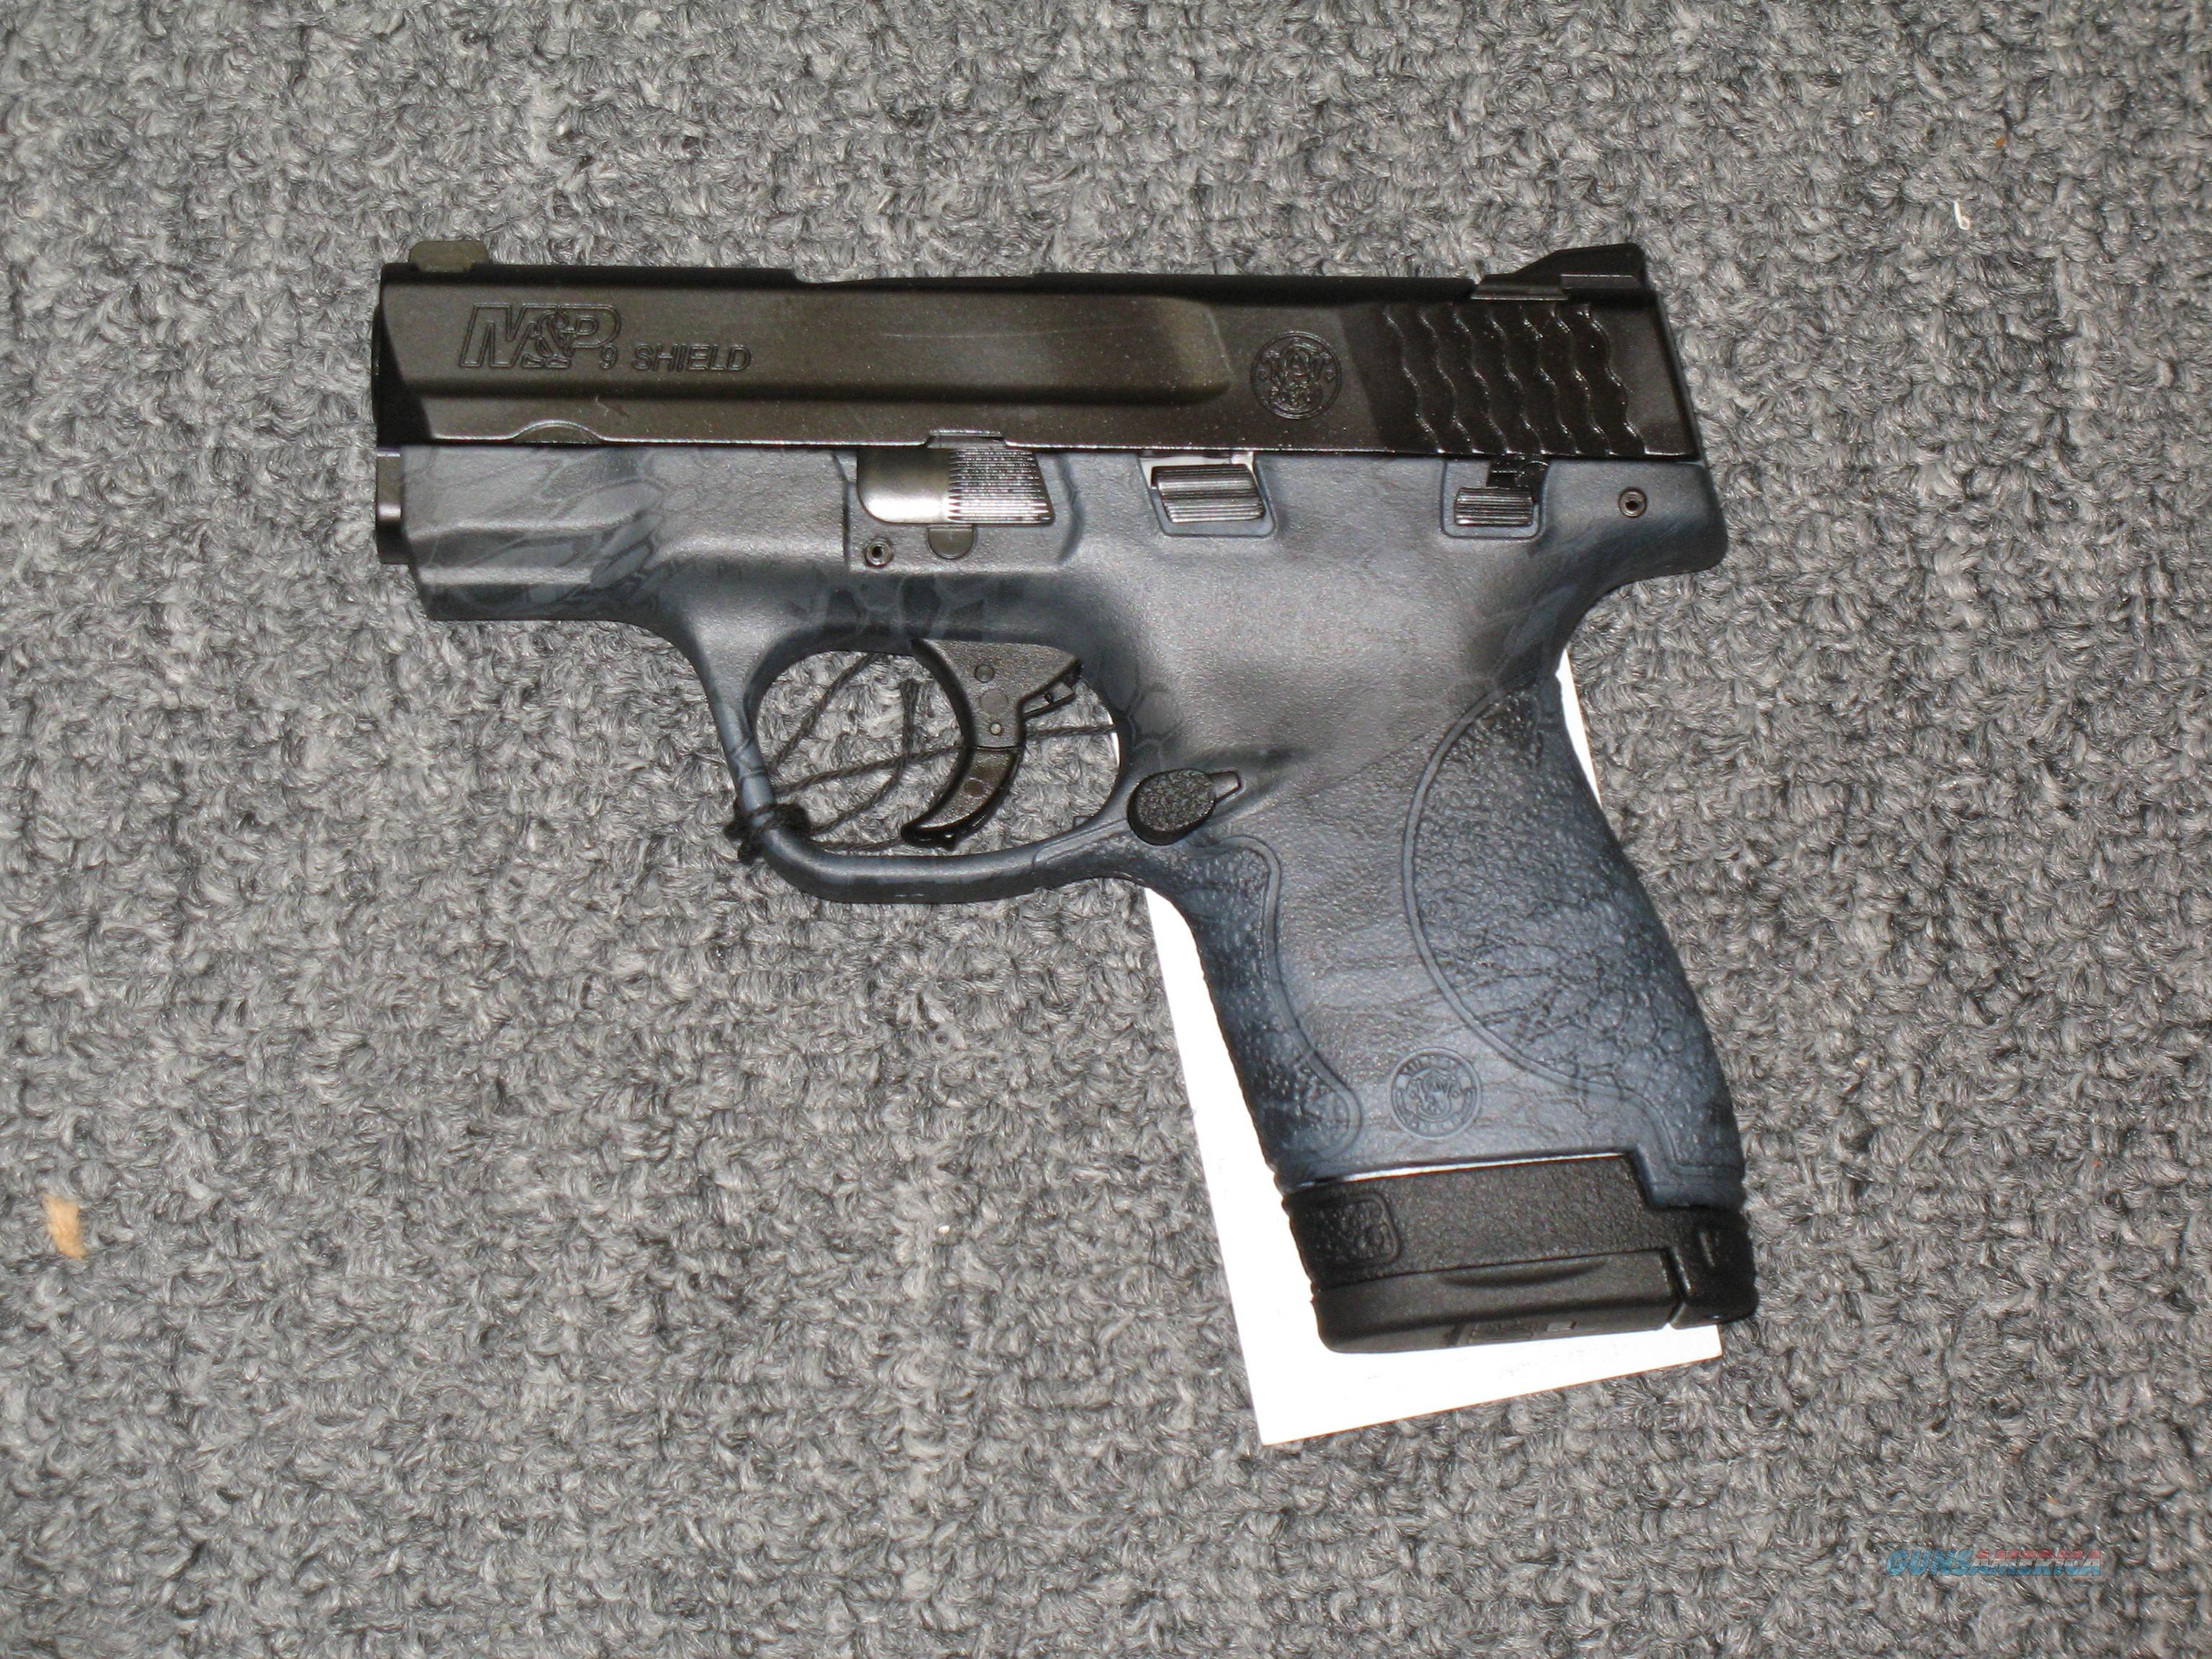 Smith & Wesson M&P 9 Shield with a Kryptek Typhon finish  Guns > Pistols > Smith & Wesson Pistols - Autos > Polymer Frame